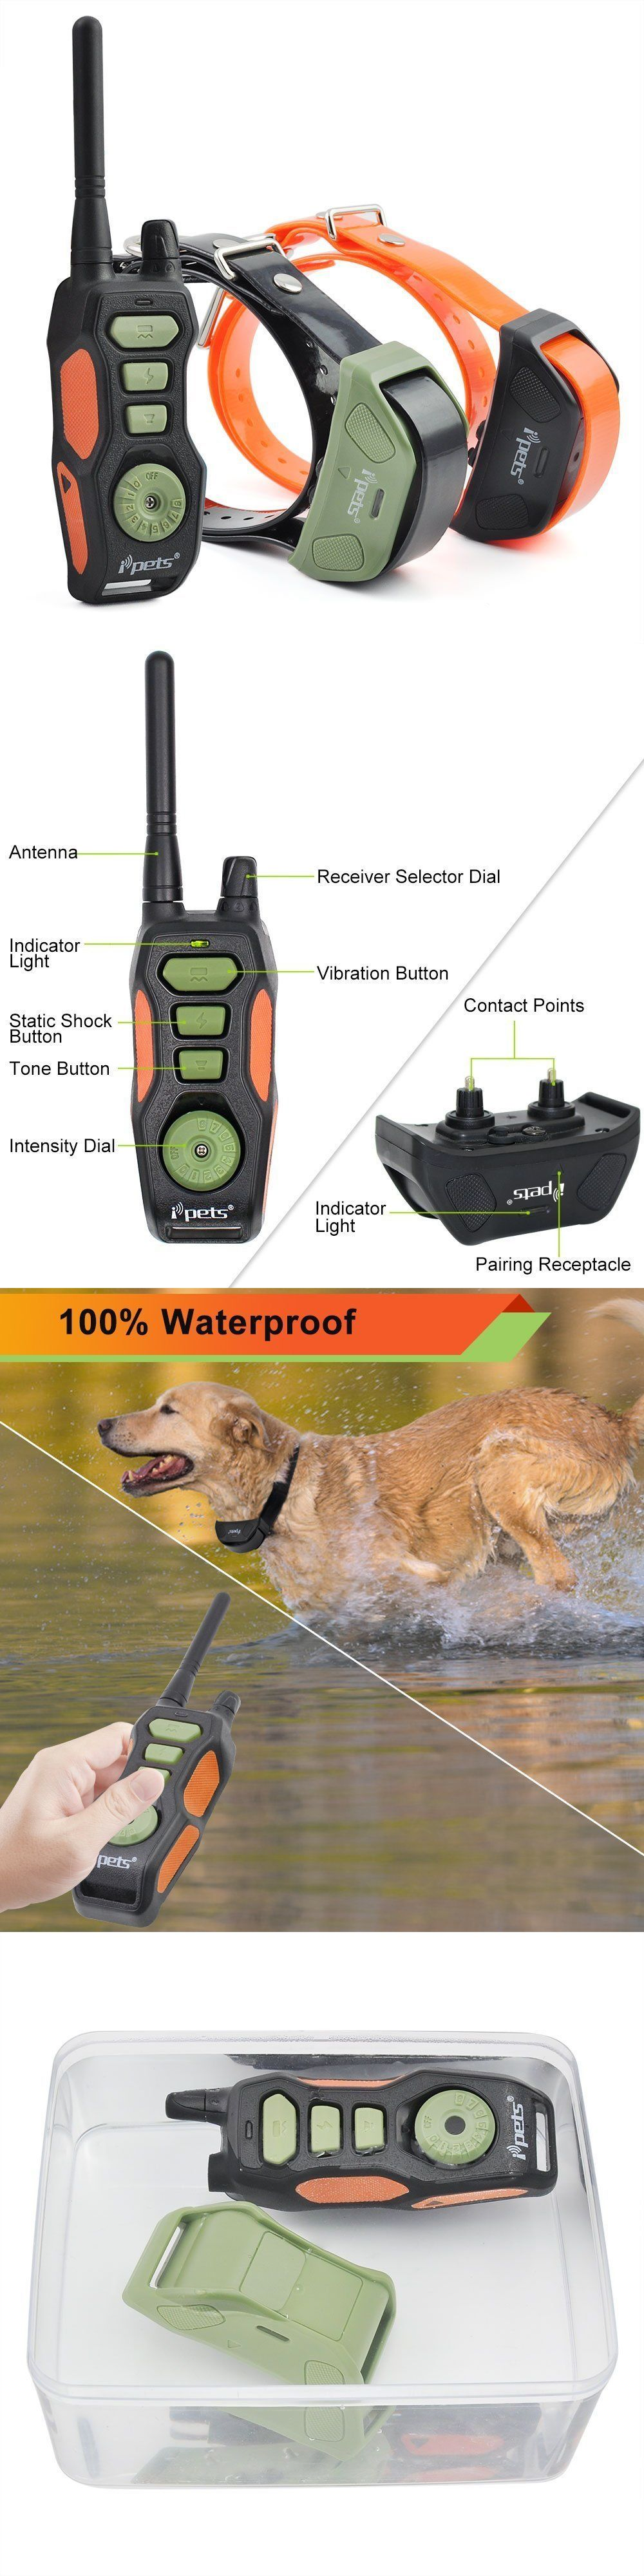 Bark Collars 66774 880 Yards Rechargeable Waterproof Electric